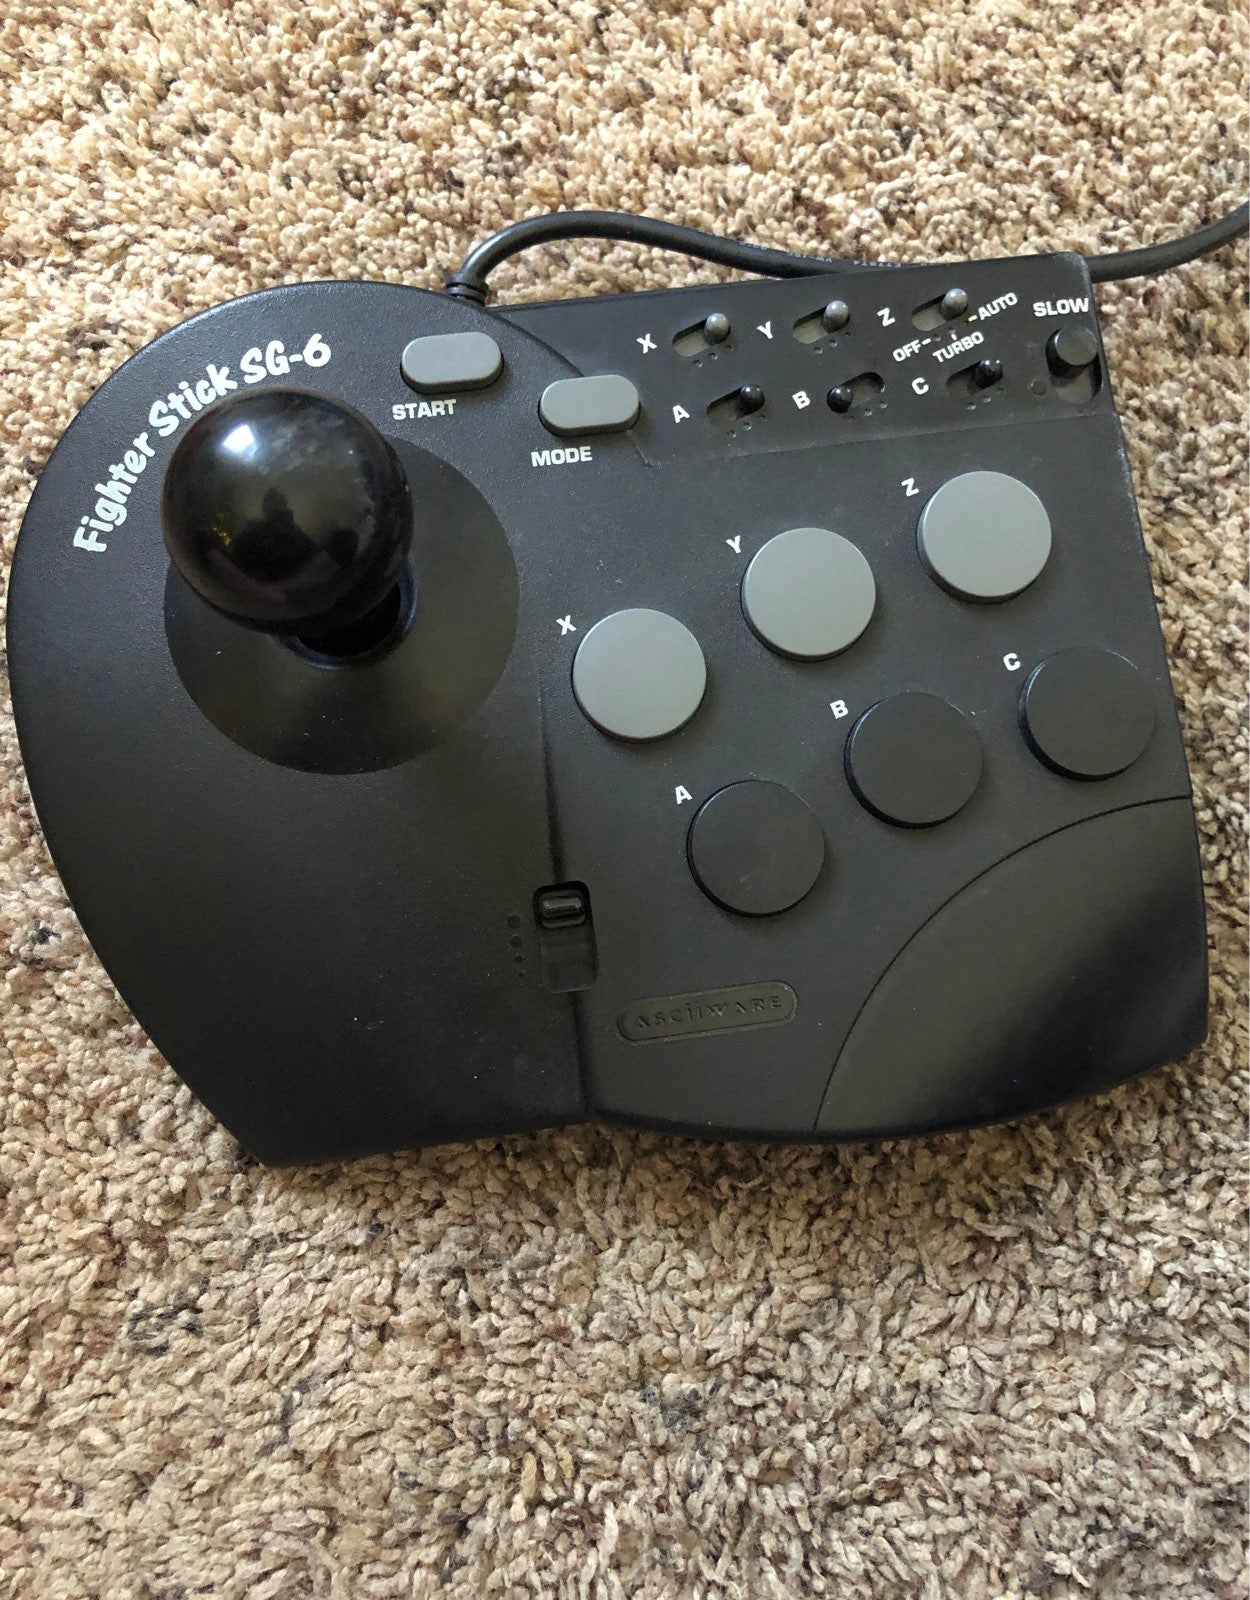 Fighter Stick SG-6